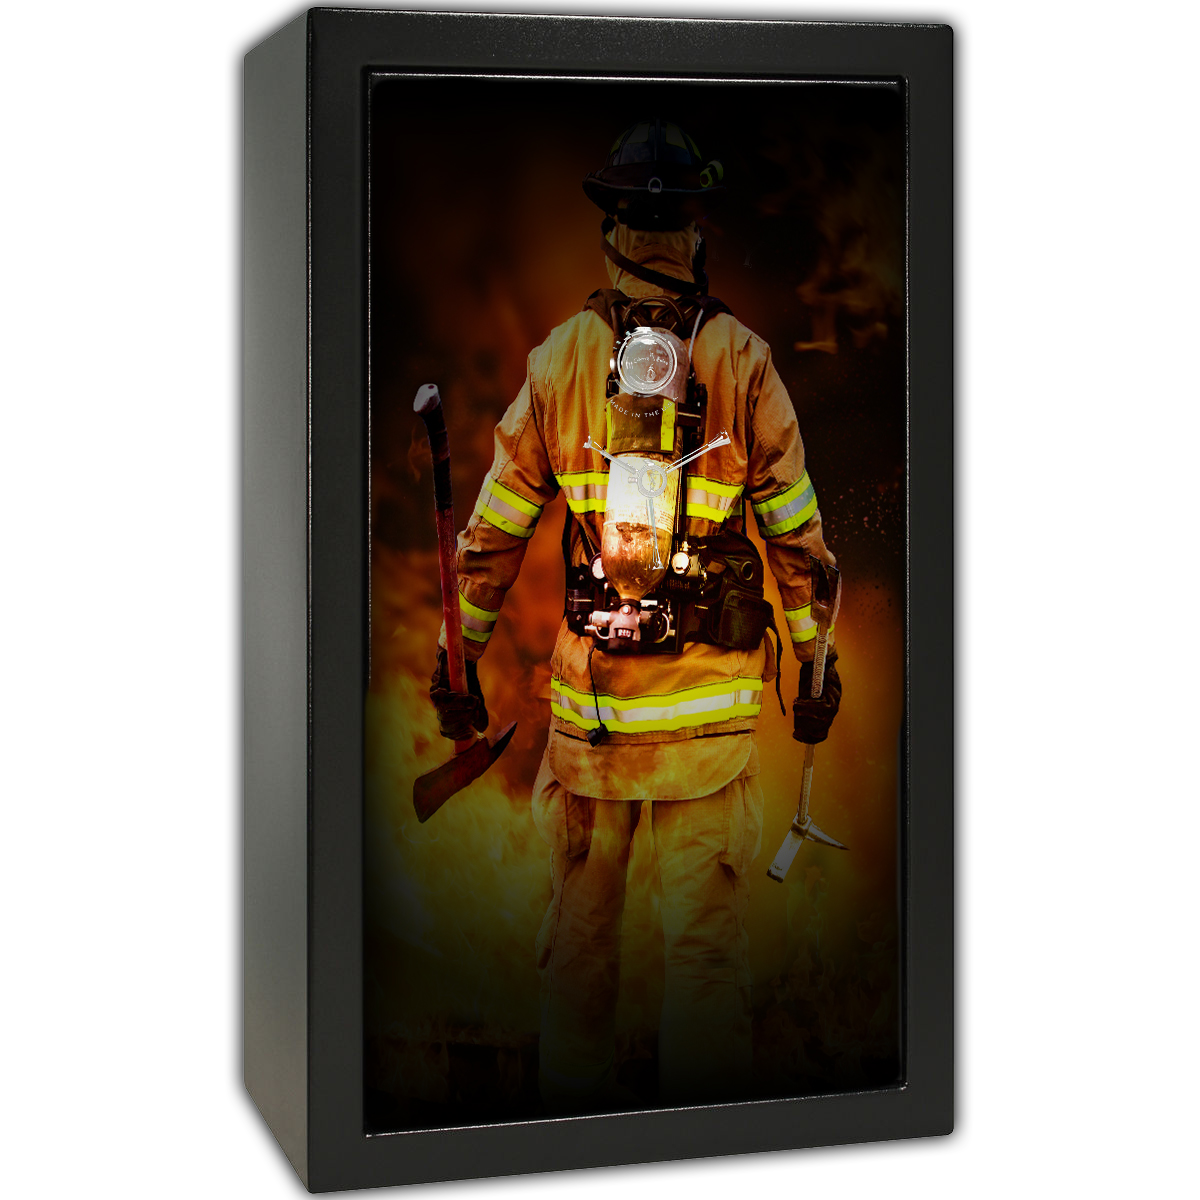 Gun Safe Decal - Large Firefighter Back